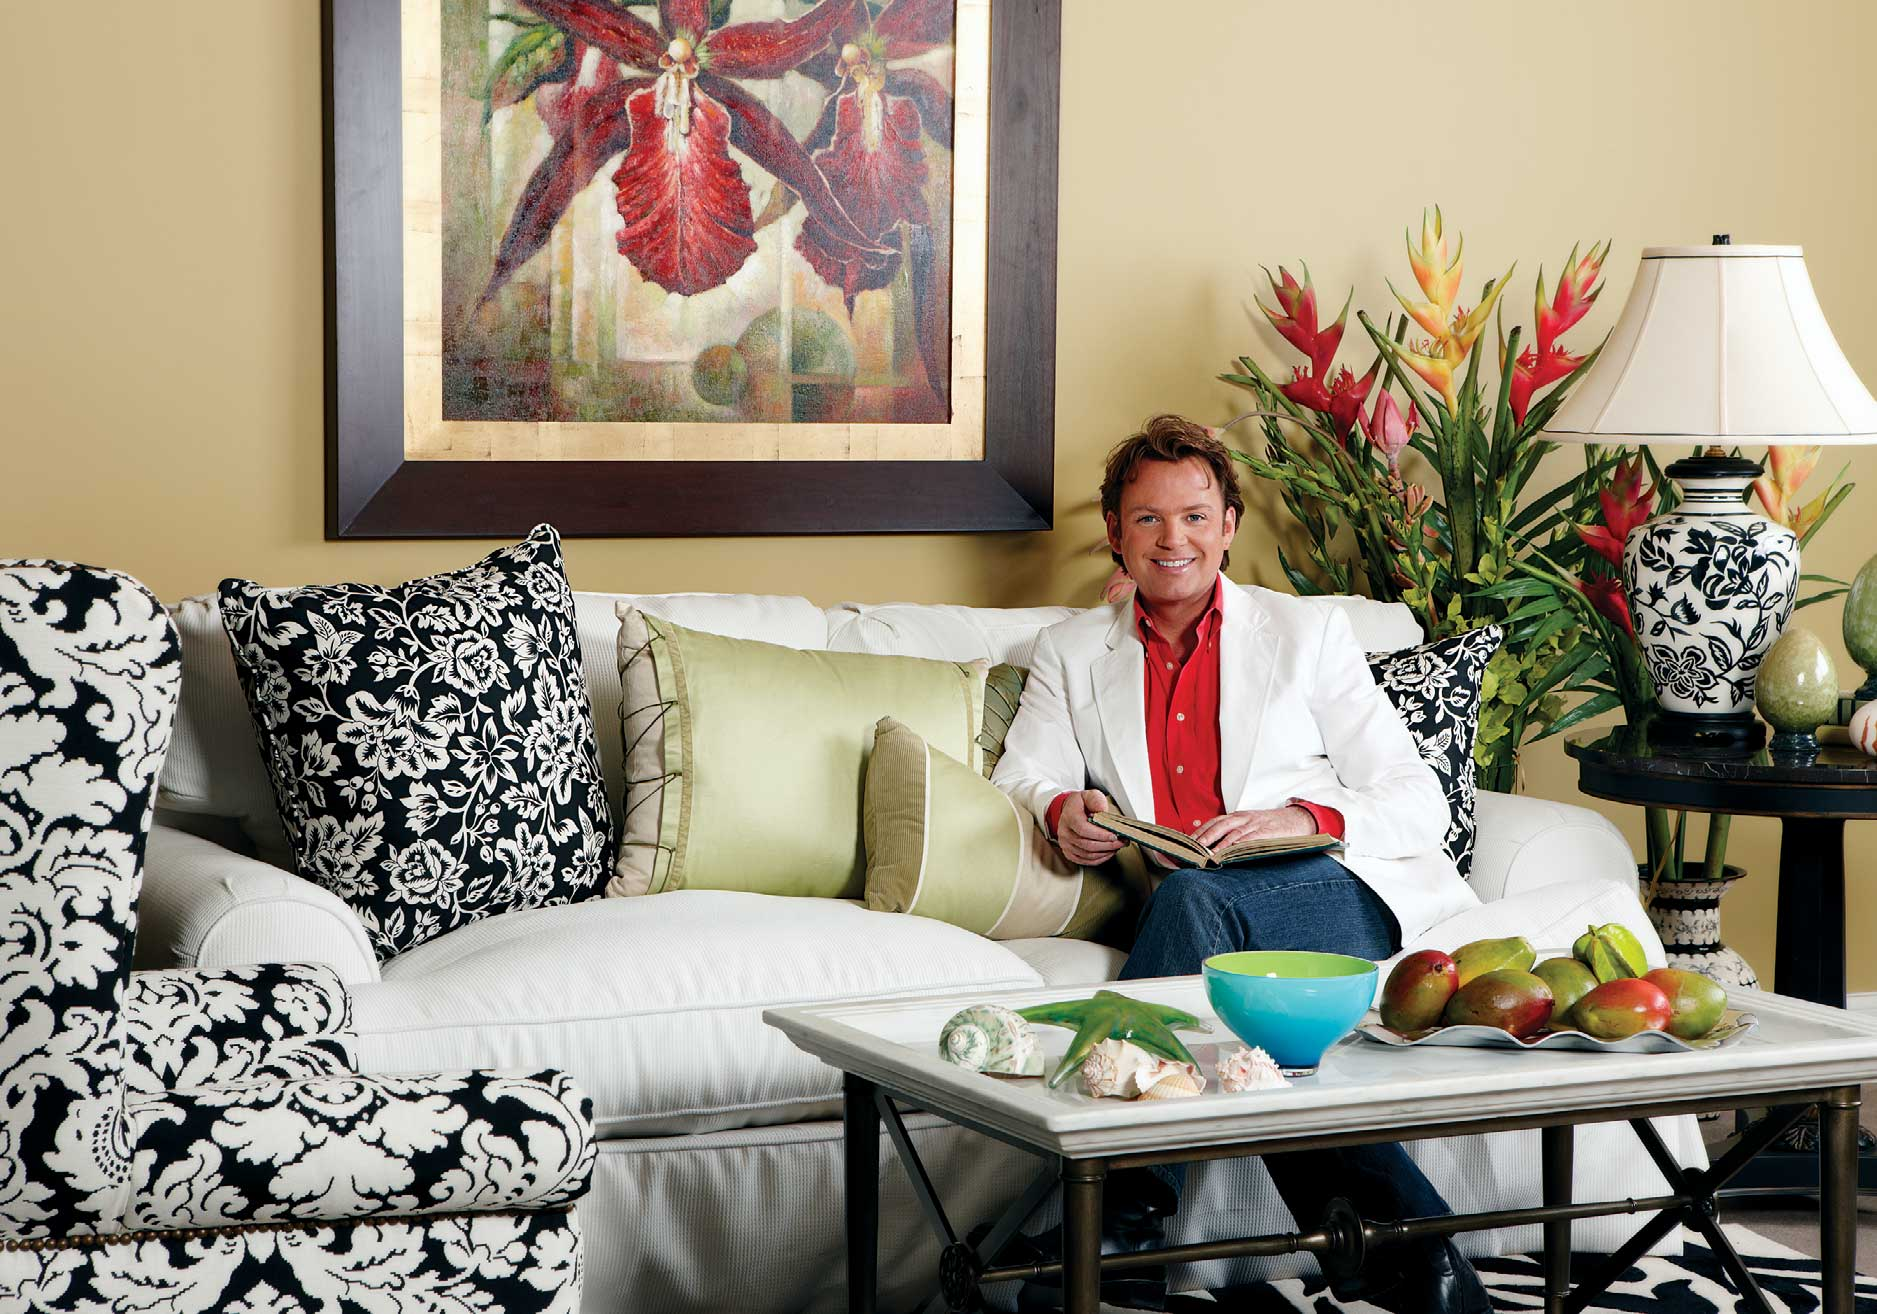 """Randy creates a summer room at Selden's Home Furnishings (1801 62nd Ave. E., Fife,253-922-0366; seldens.com).All products available at Selden's except as noted:""""Orchids"""" painting (Prestige Art); sofa and chair (Southern Furniture); pillows (Thomasville Furniture and Eastern Accents); tables (Drexel Heritage); lamp (Sedgefield);vase (John Richards); retro zebra rug (Medallion Imports);blue bowl from Macy's (macys.com); green glass starfish from Avalon Glassworks (avalonglassworks.com).  Maximum Living Paint premieres this month,available exclusively through Selden's and Authentic Home (authentichome.com)."""